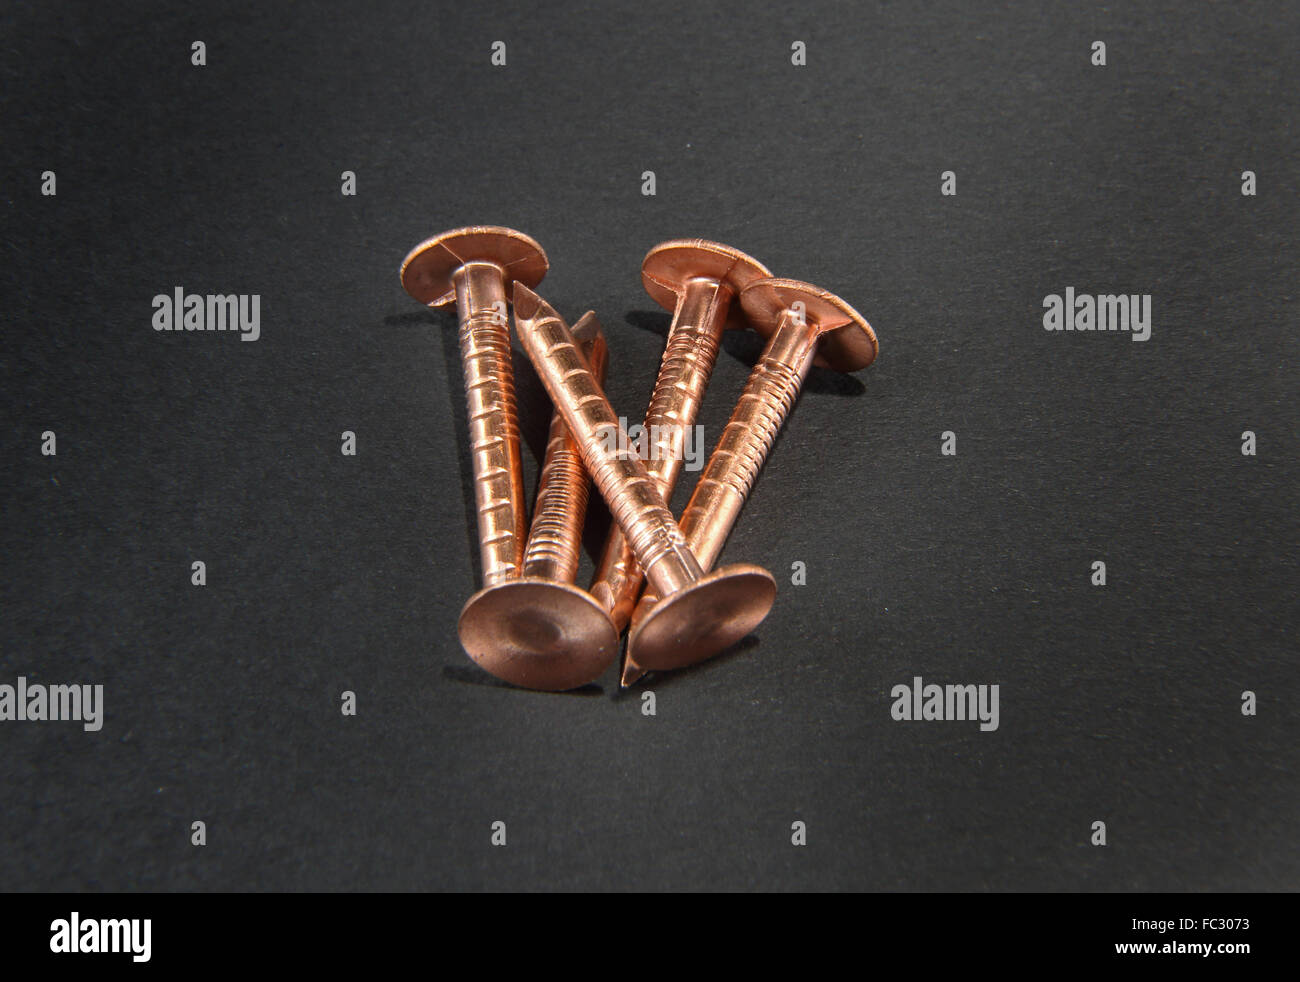 Studio close-up shot of five copper roofing nails against a black background - Stock Image